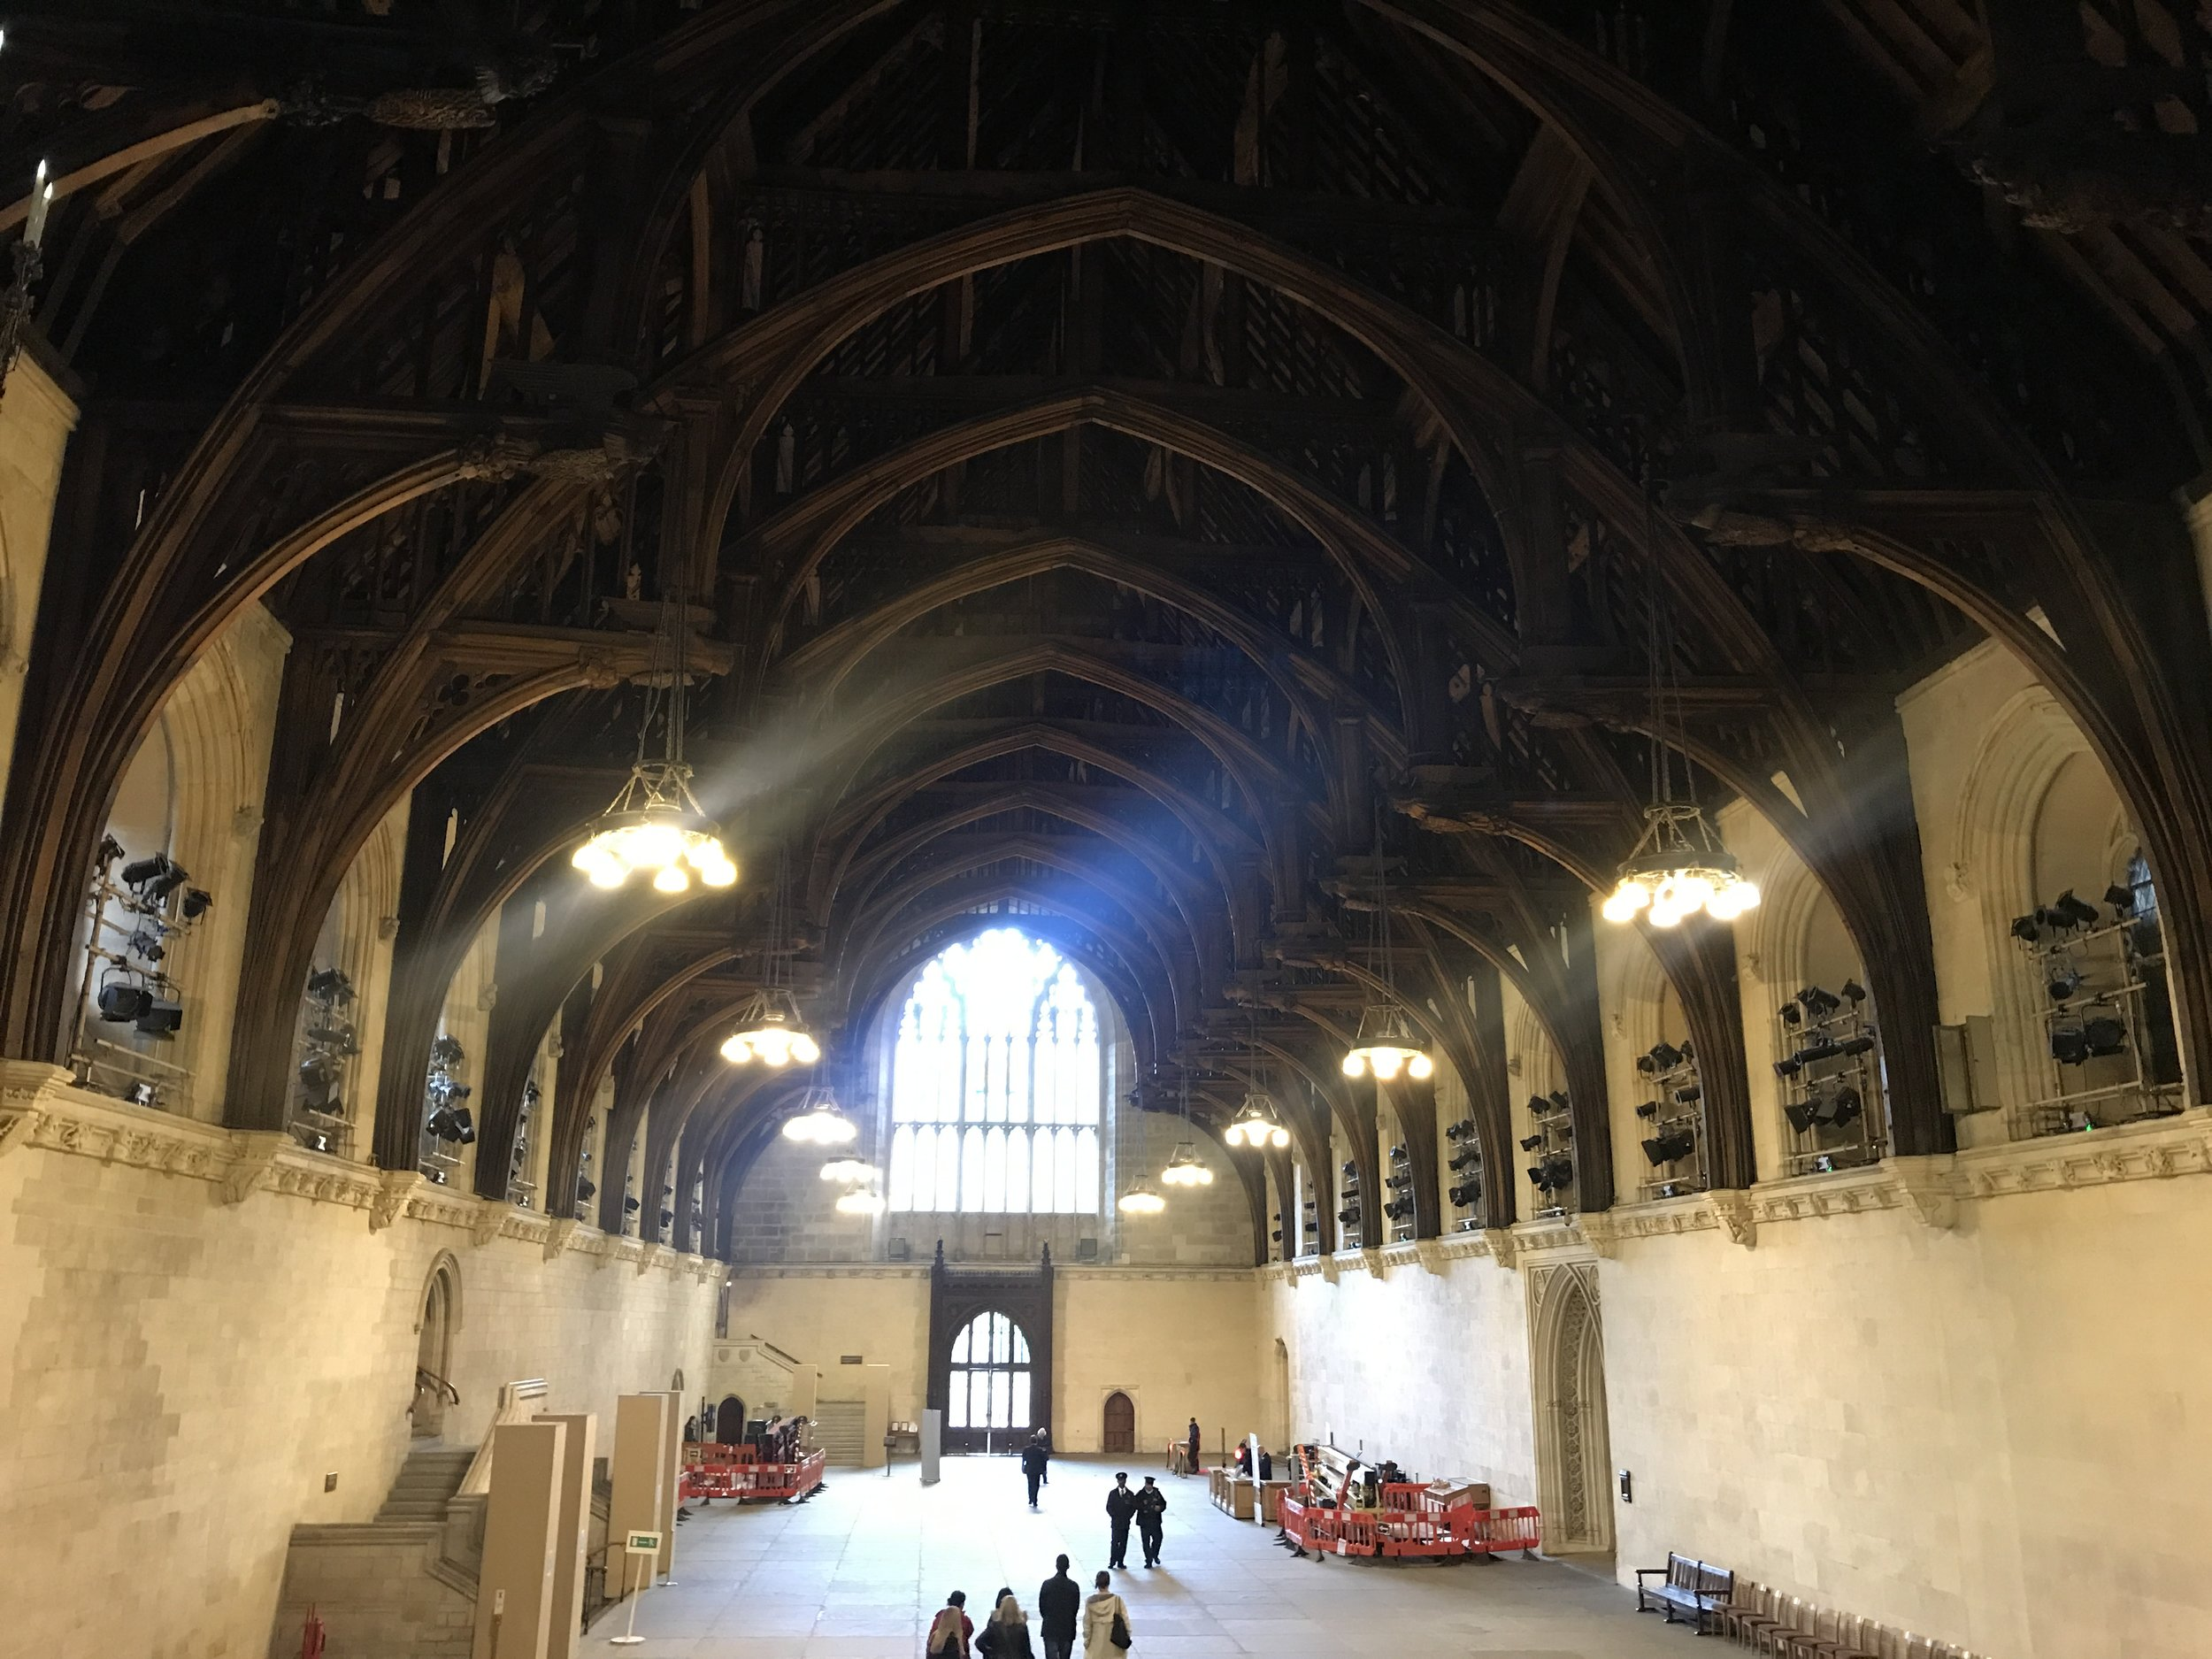 Westminster Hall is 900 years old. It was thought the the roof must have been supported by columns but no evidence has been found of these.